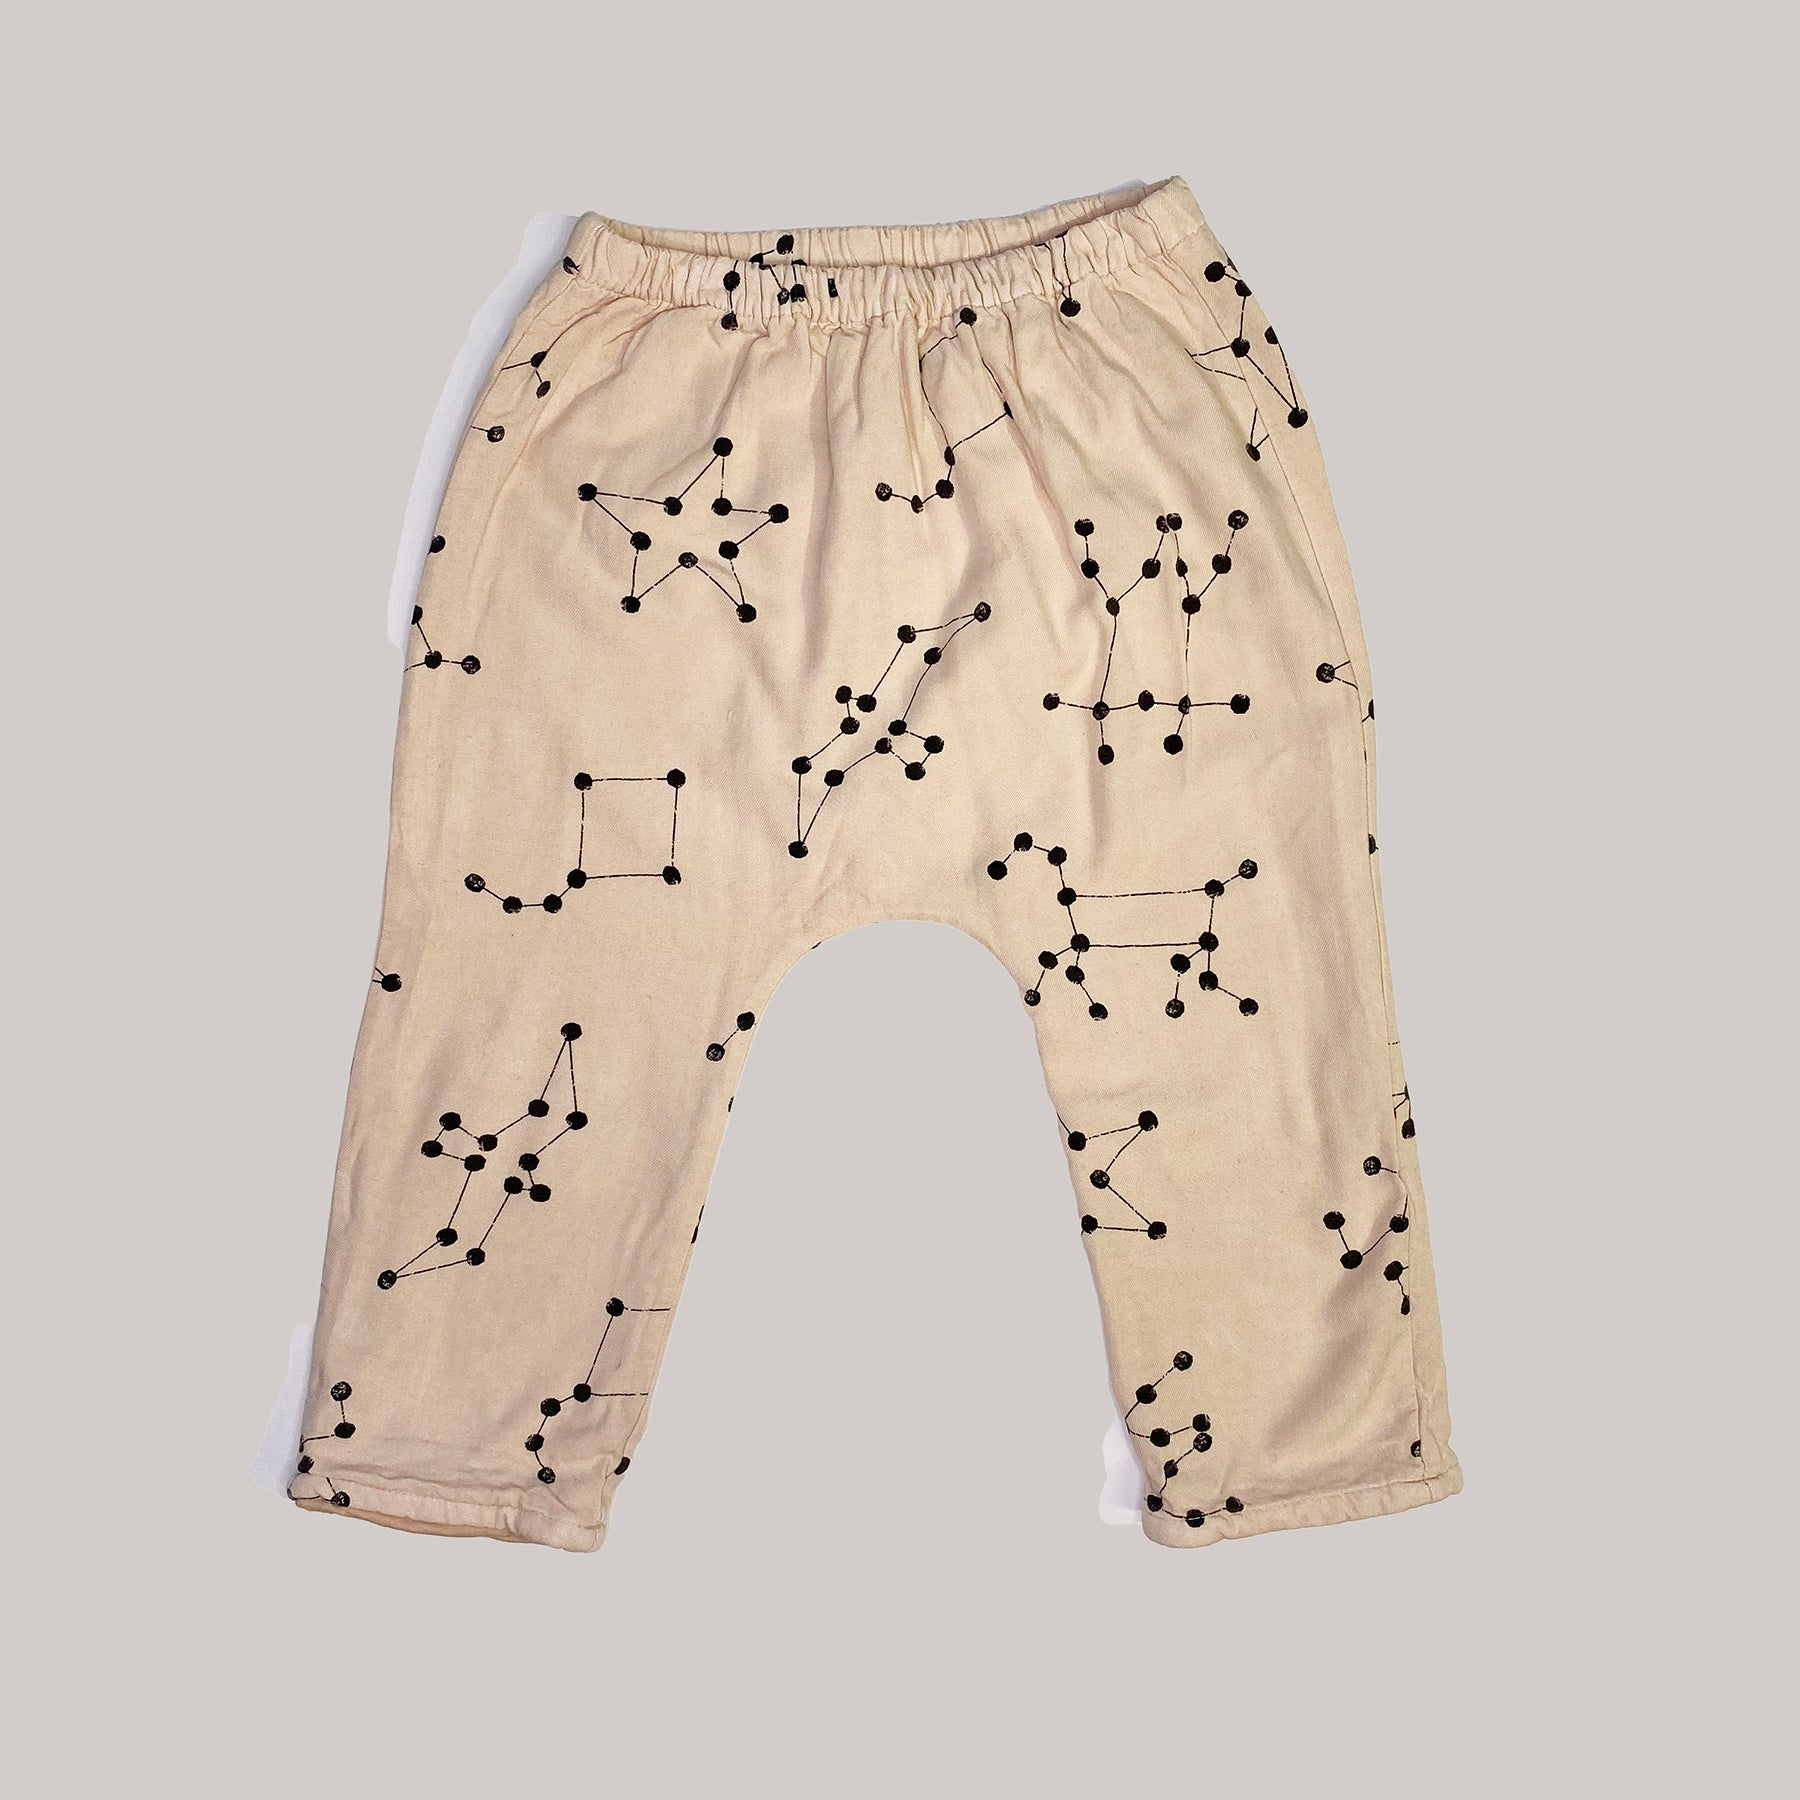 Re-wear : Bobo Choses constellation puuvillahousut, pink | 18-24kk